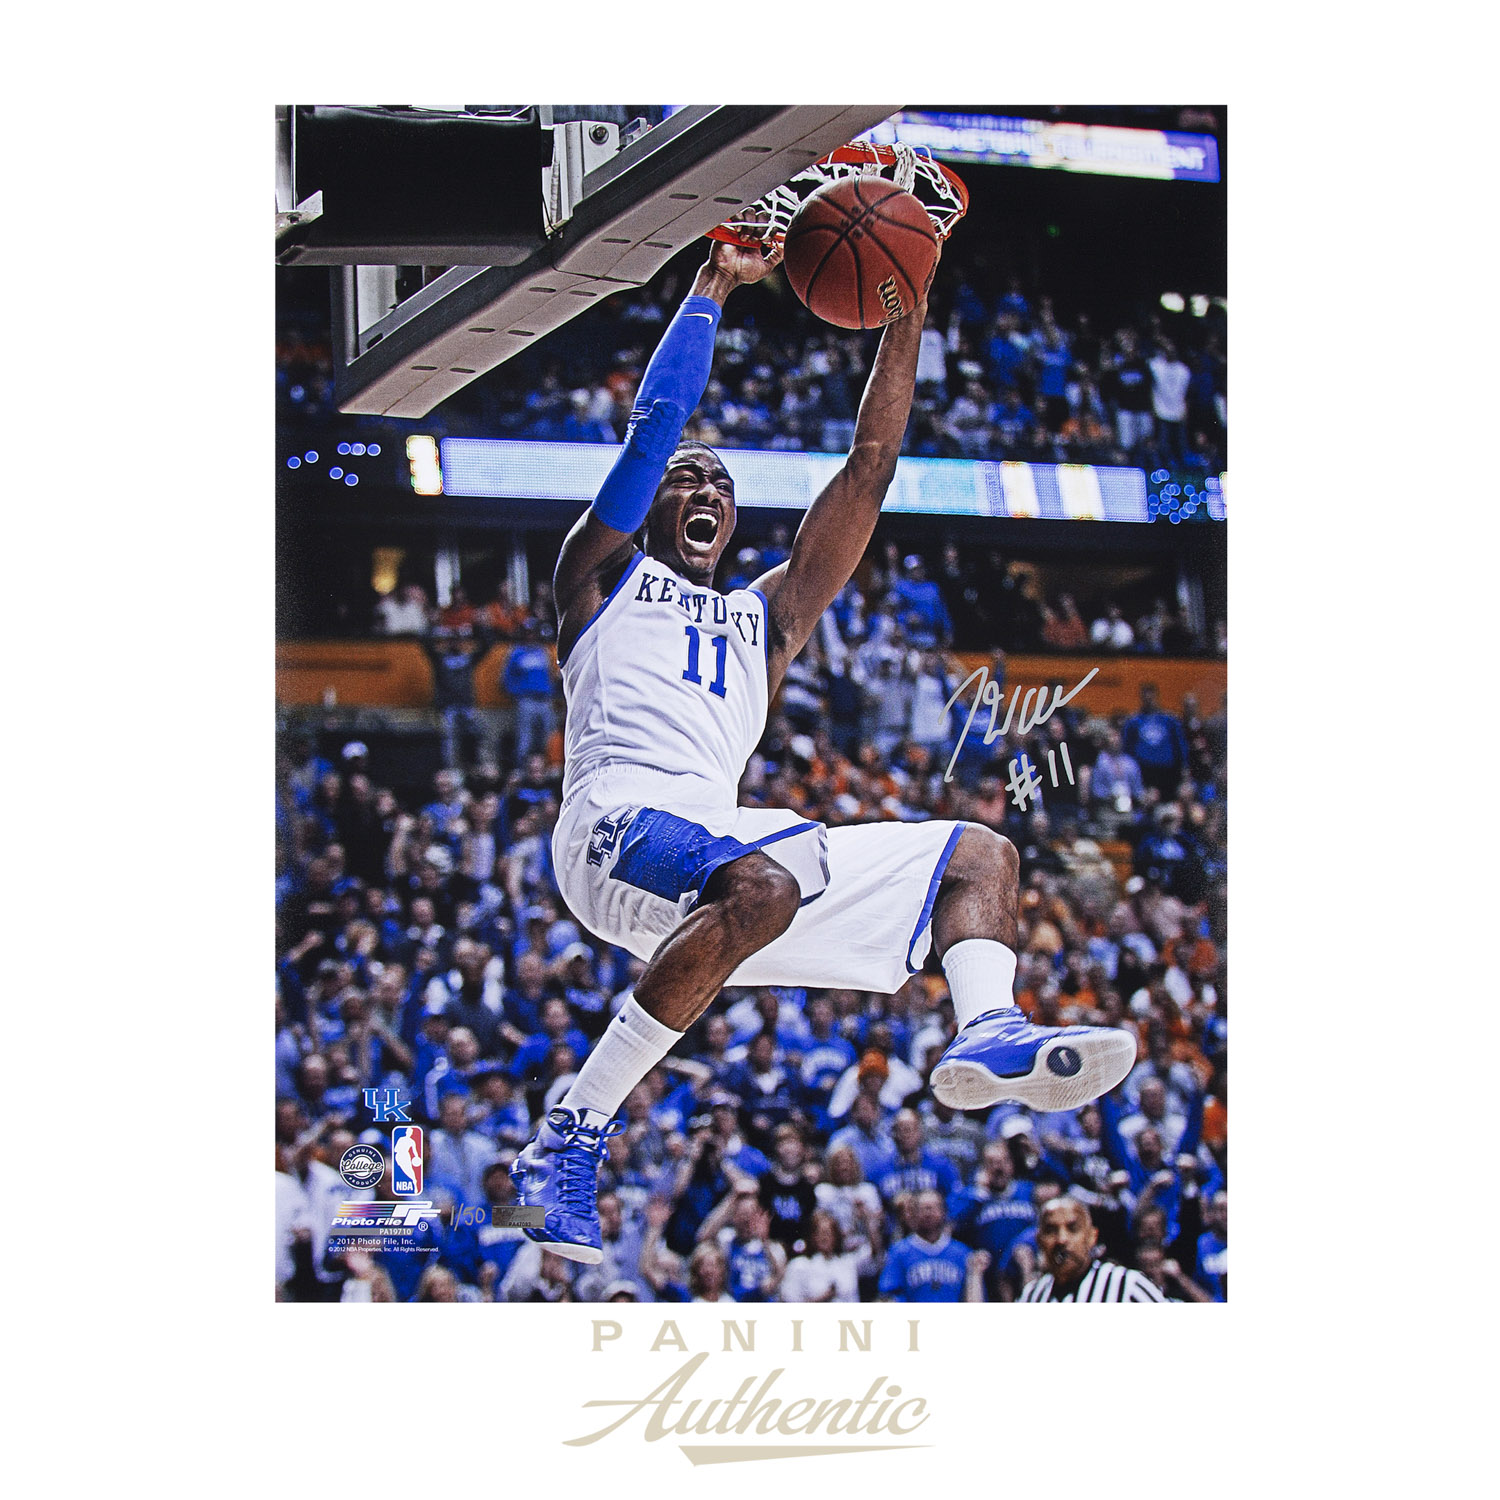 huge selection of 2bef4 1c20e John Wall Autographed 16x20